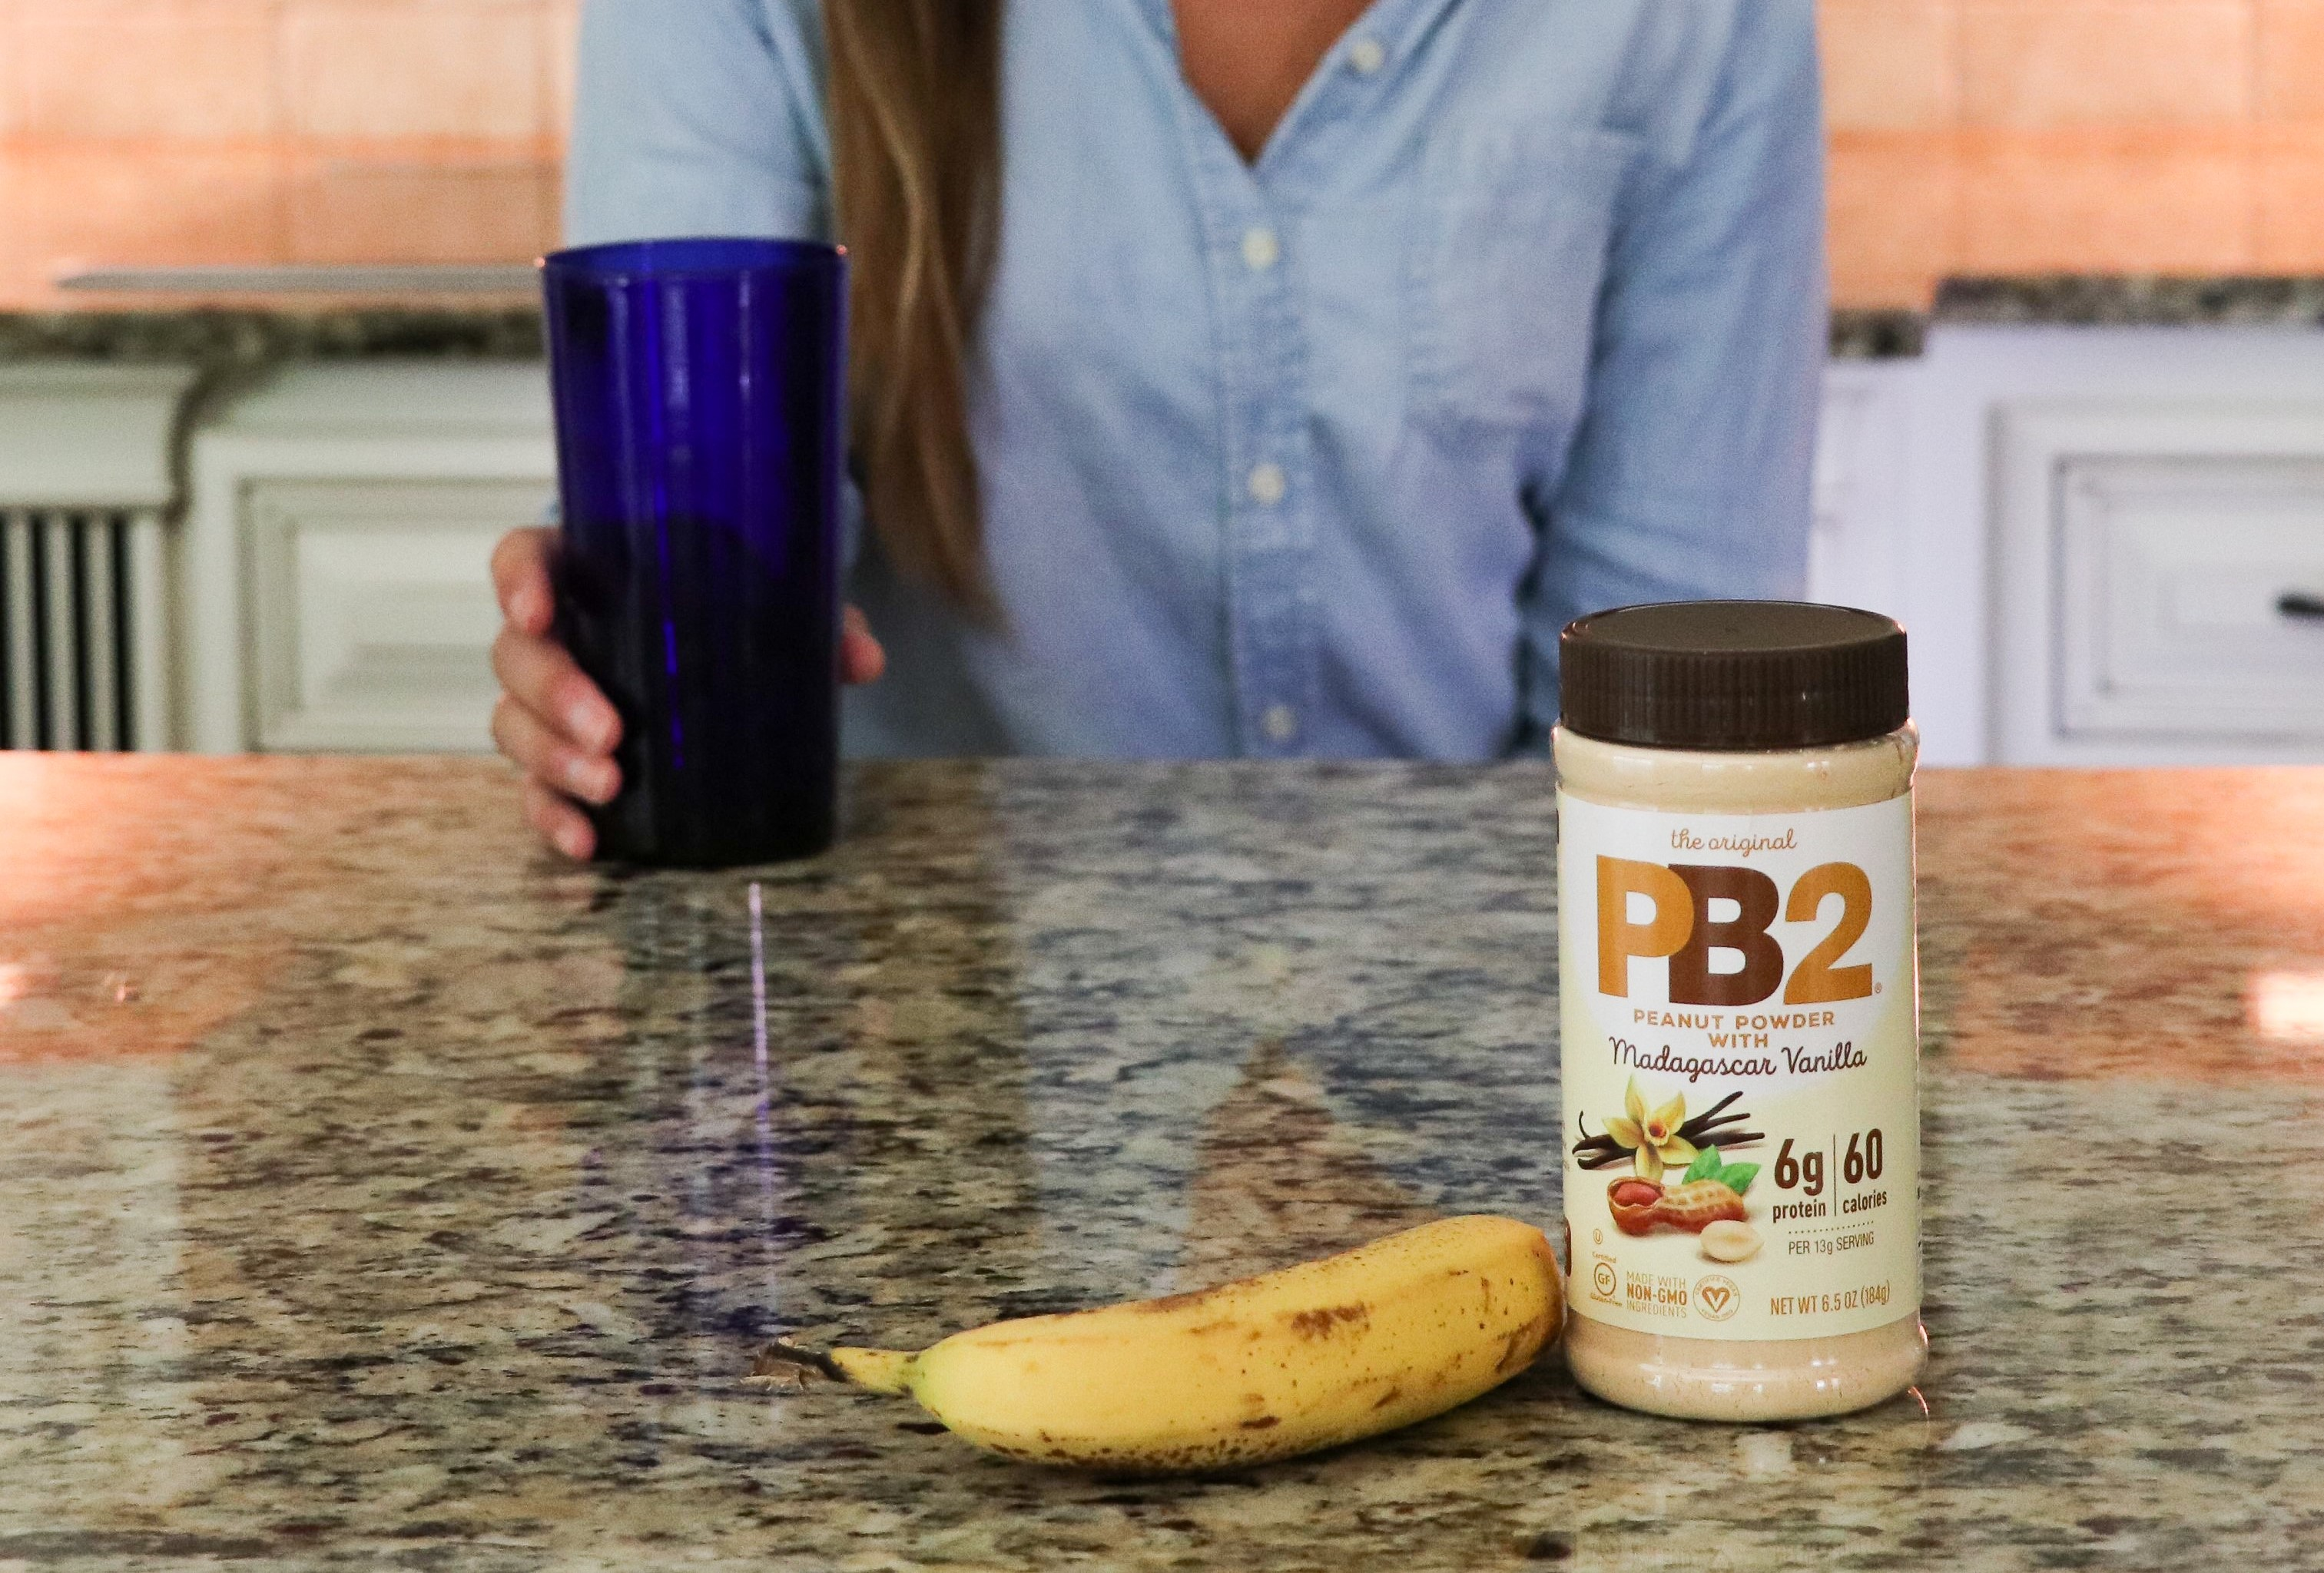 How to Avoid That Midday Energy Crash: Fuel Up with Peanut Butter